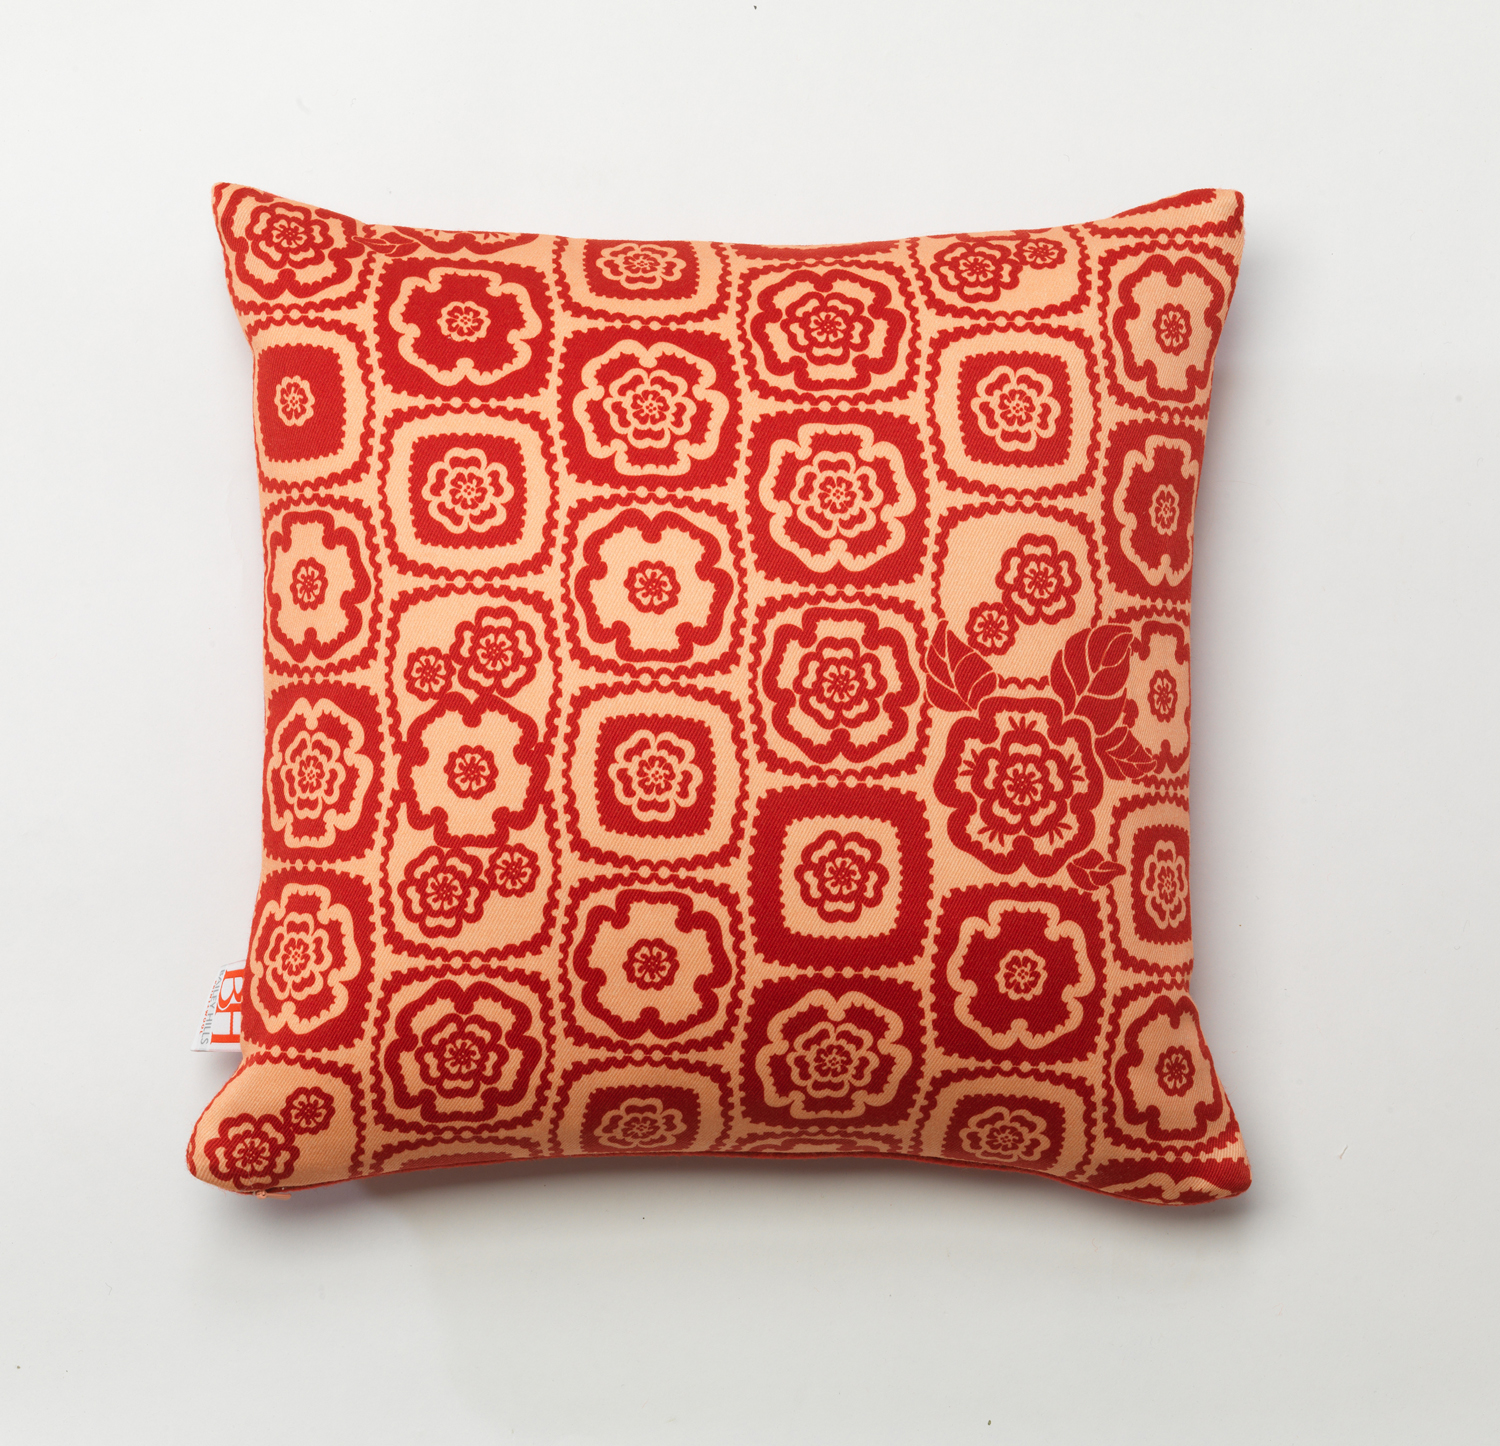 'Rosette' printed wool twill cushion hi res from 'Signature collection.jpg